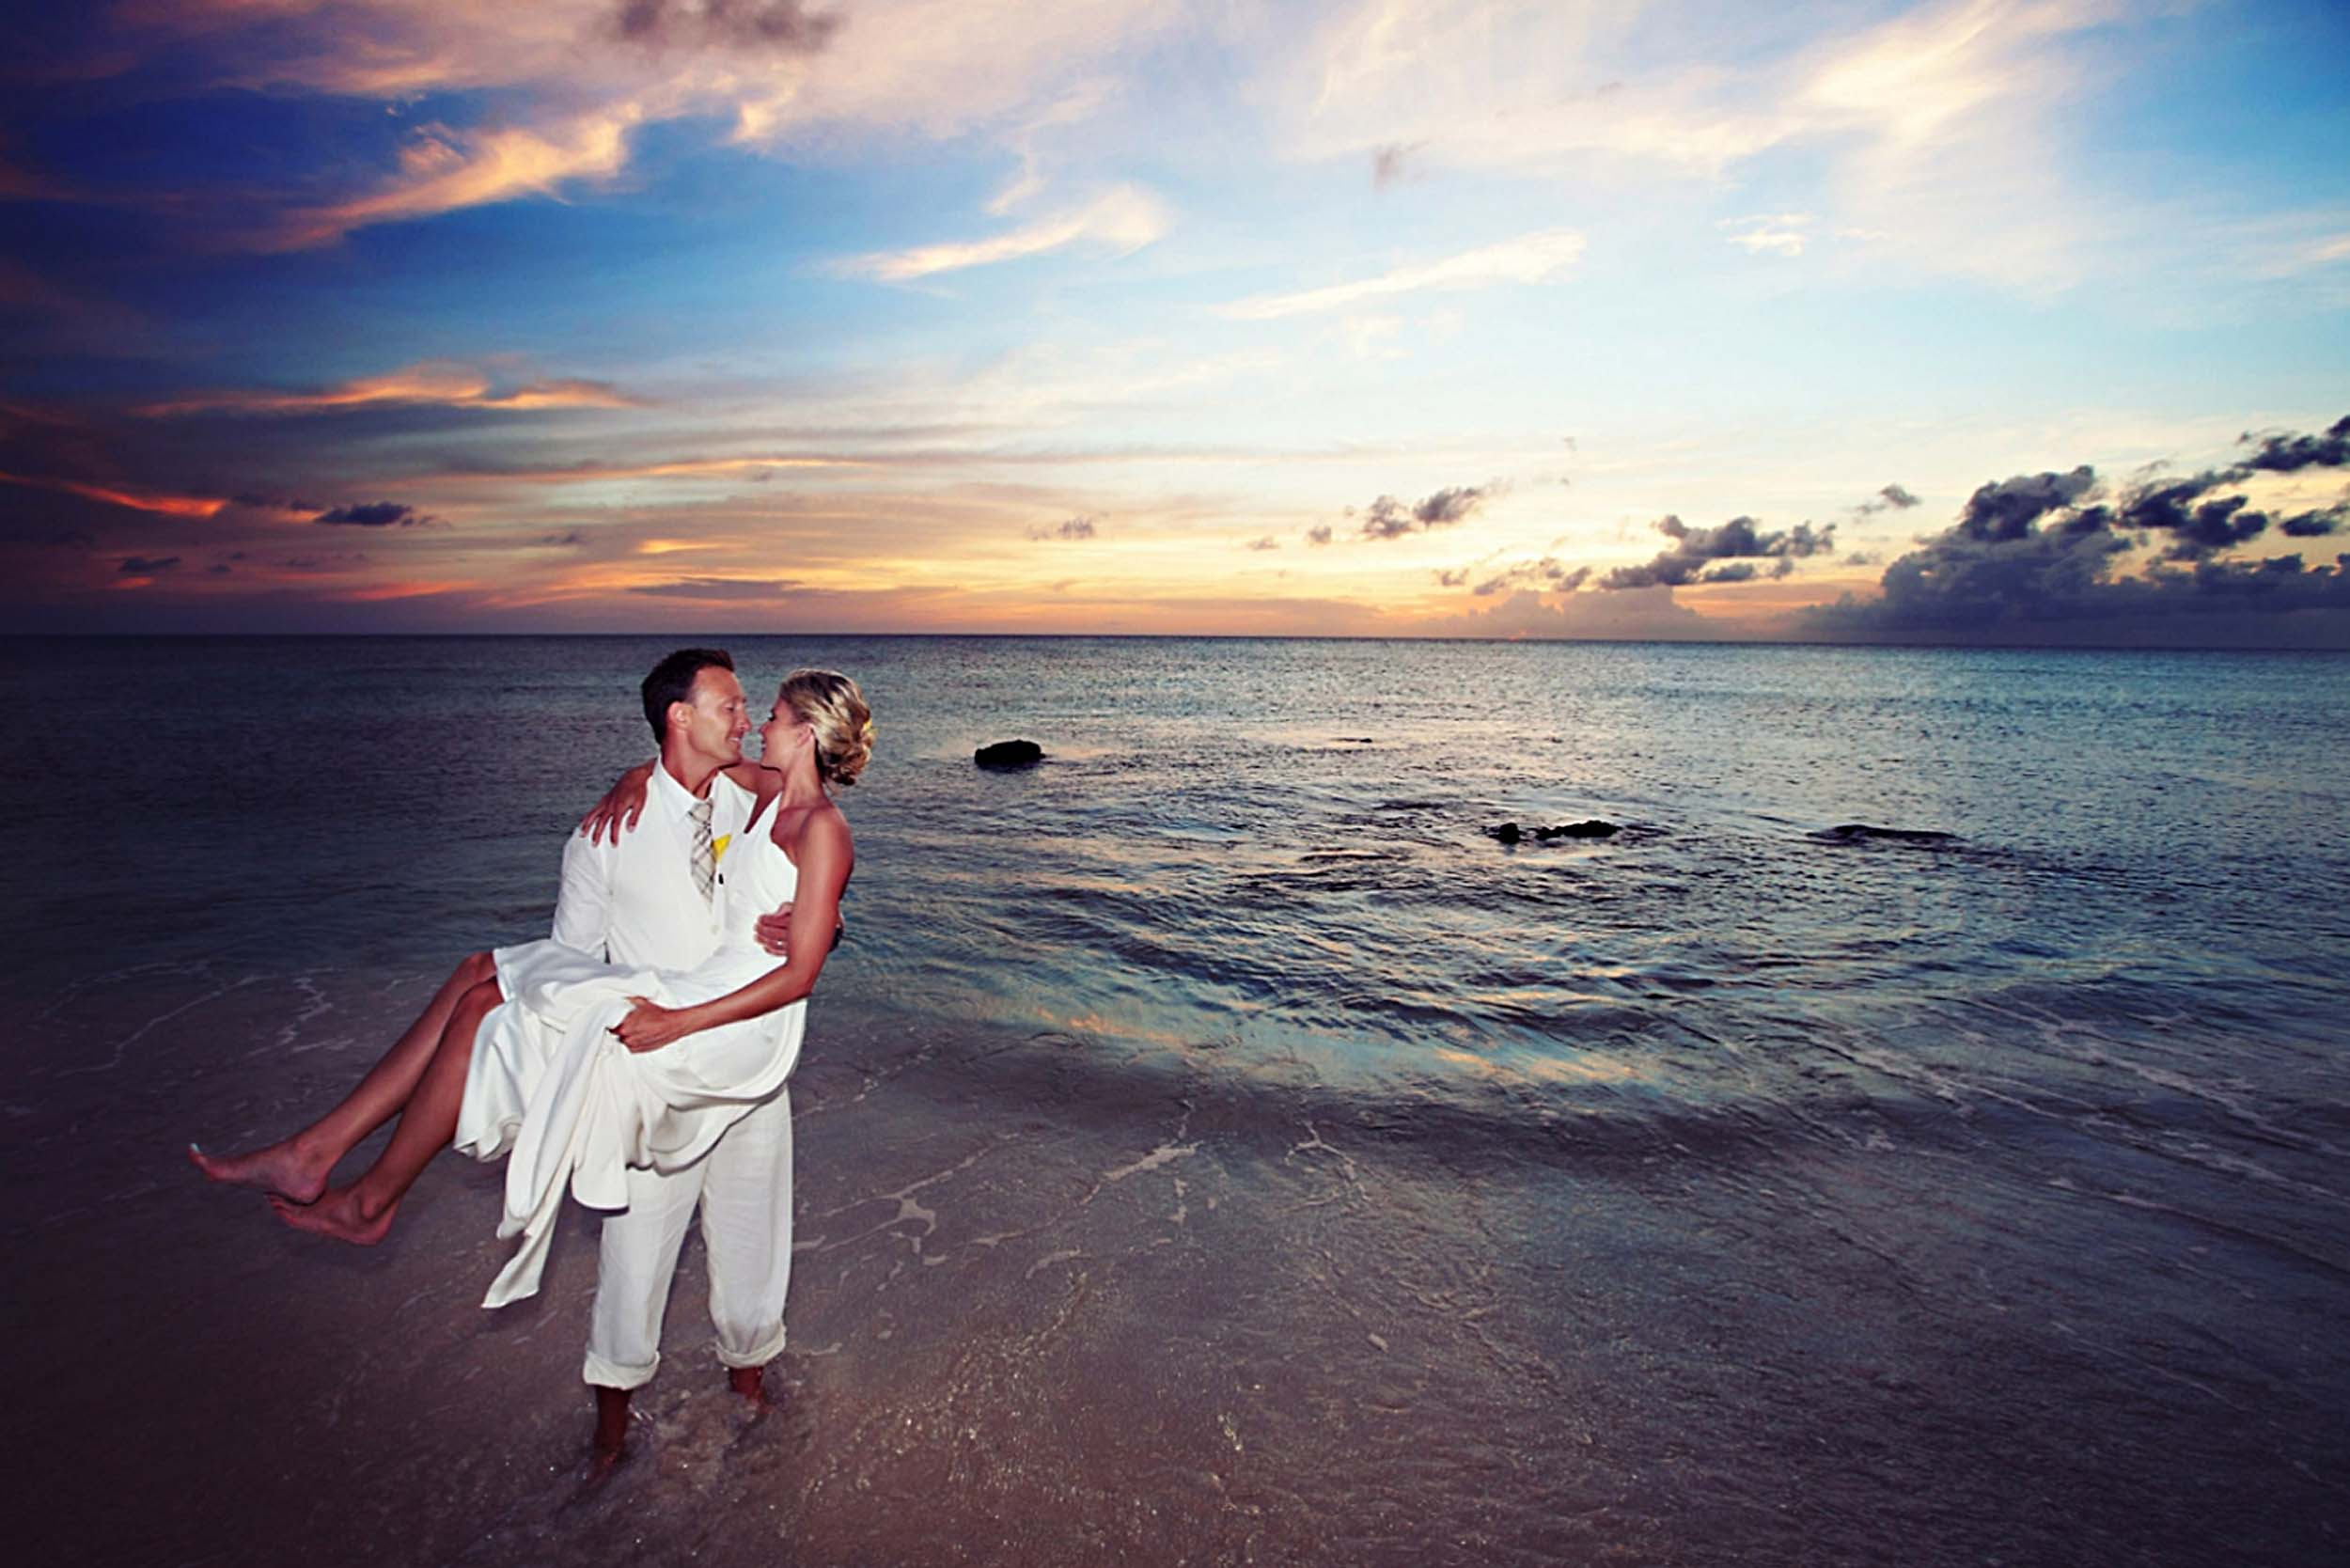 weddings-aruba-04.jpg